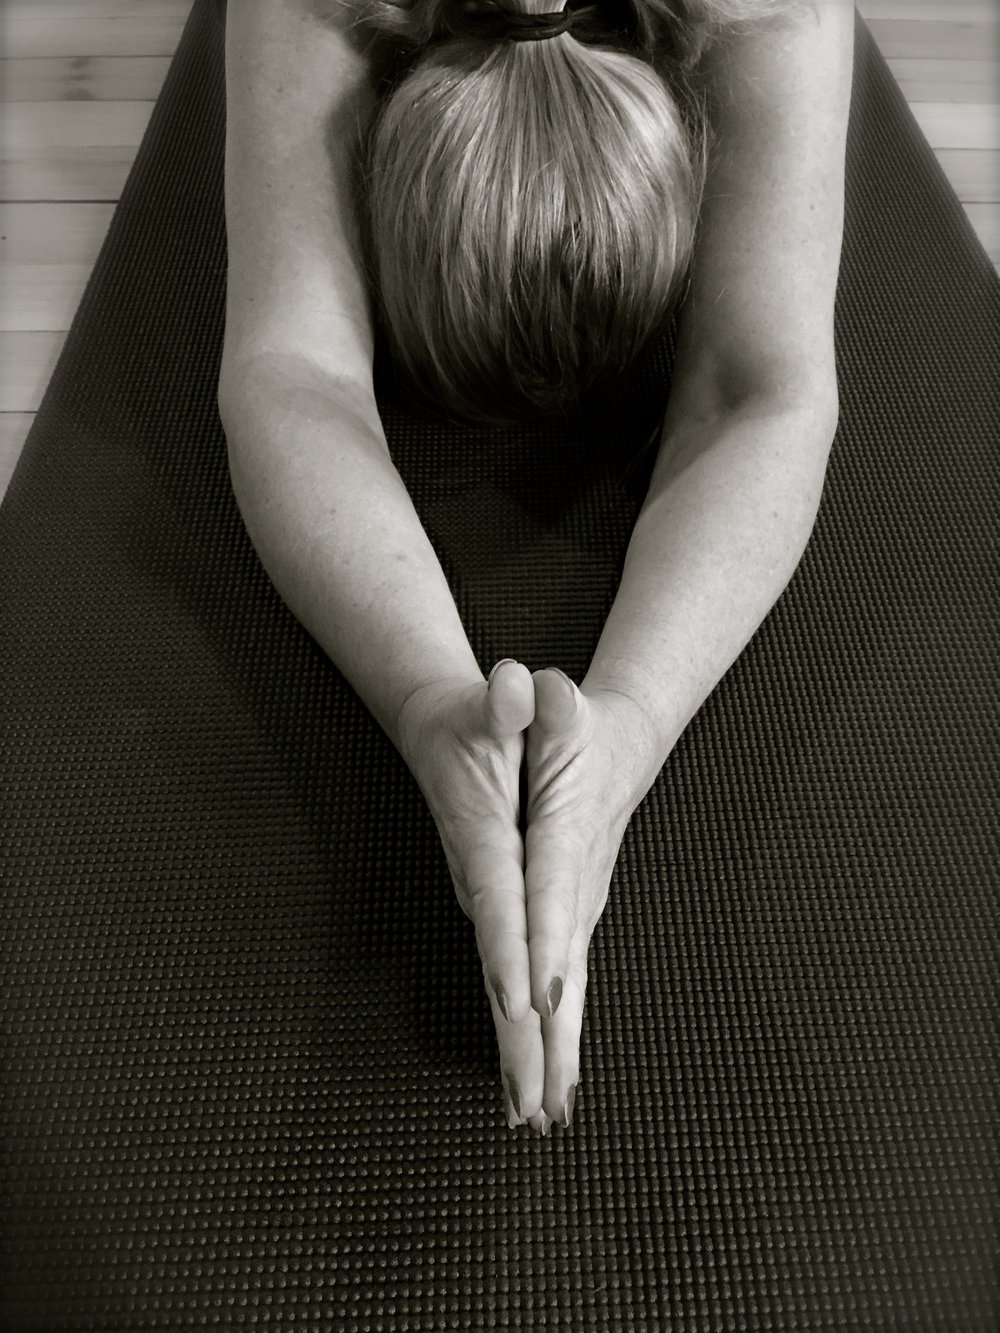 ' A faith-based yoga practice allows us to find inner stillness in order to connect to and hear the voice of God, while also caring for the health of the physical body.' ~ Pamela